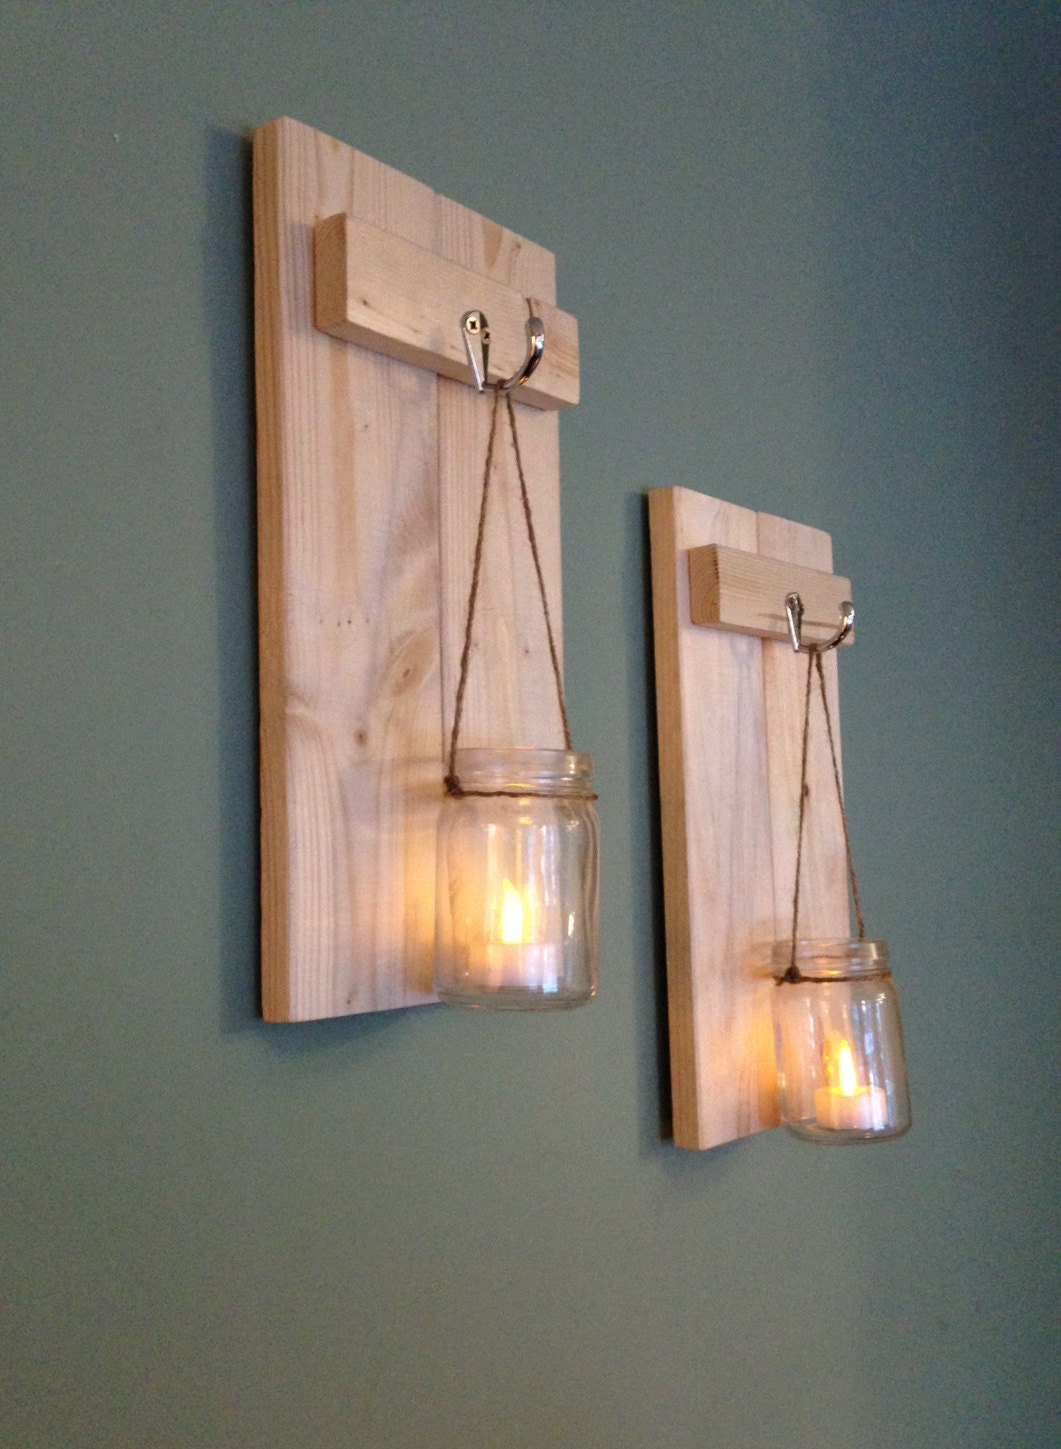 Wooden Wall Sconces For Candles : Mason Jar Sconce Rustic Wall Decor Wooden Candle Holder